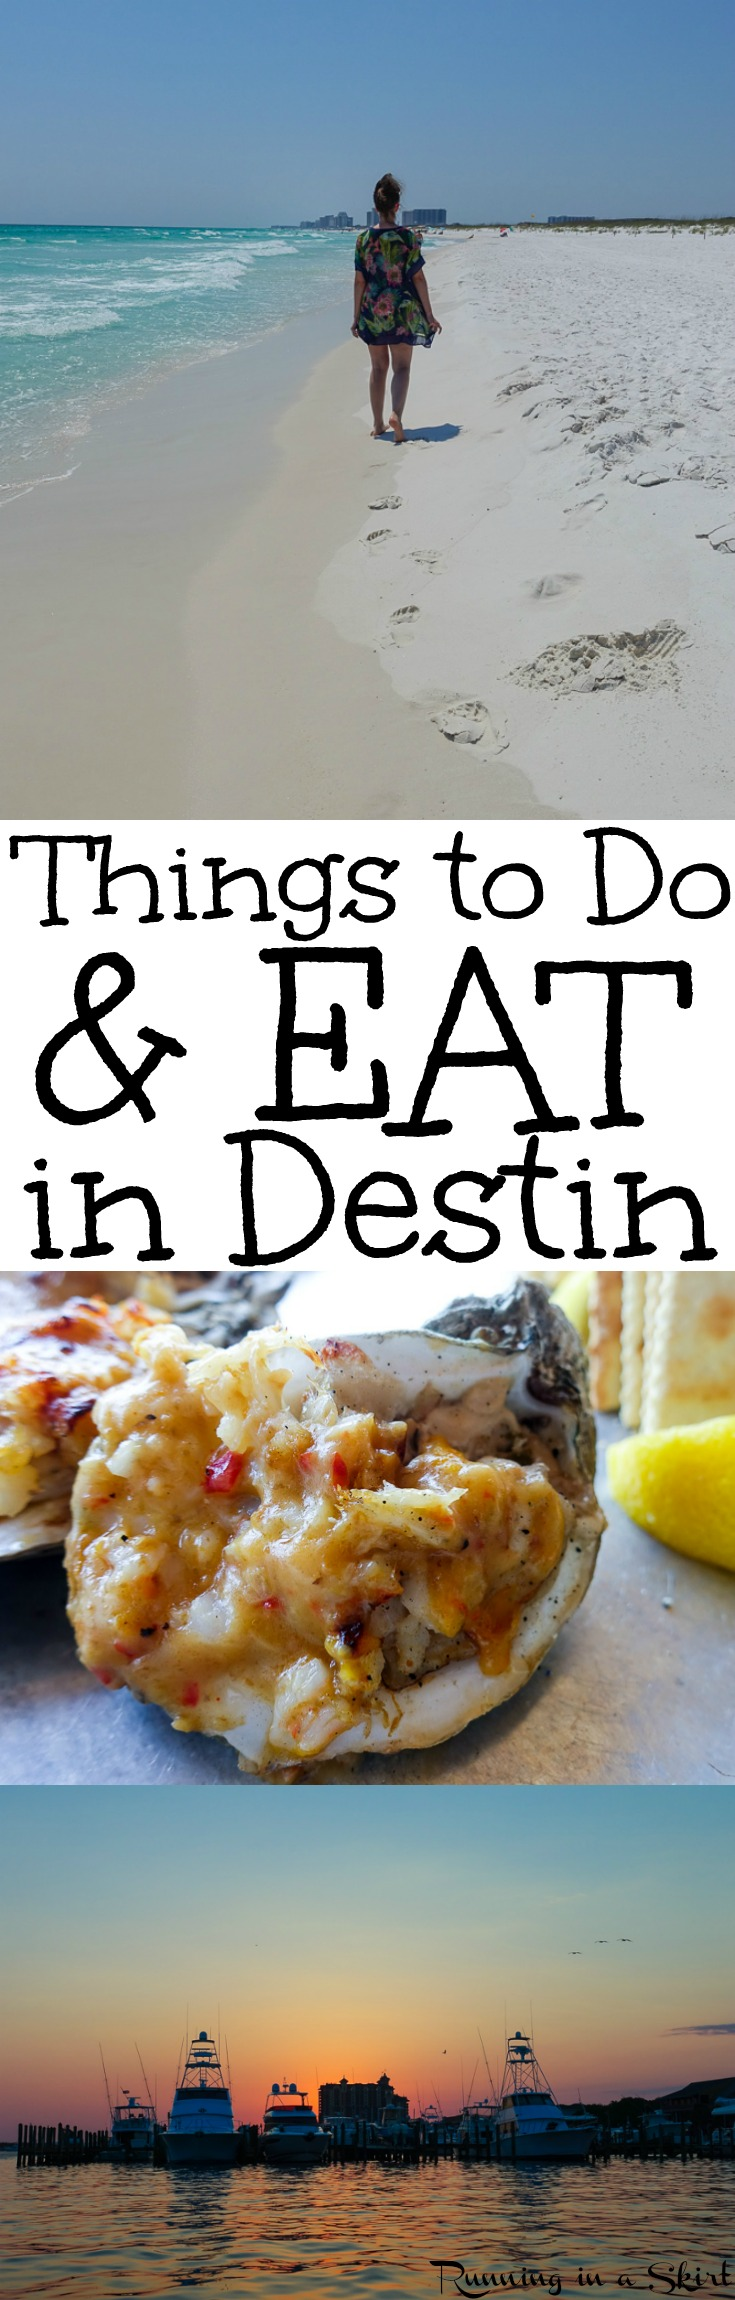 Things to Do in Destin Florida - the best beach vacation tips and places to enjoy the water.  Also includes must do restaurant and food ideas and activities.  Gorgeous pictures and sunset photos.  / Running in a Skirt #Destin #Florida #Travel #Beach #Vacation via @juliewunder